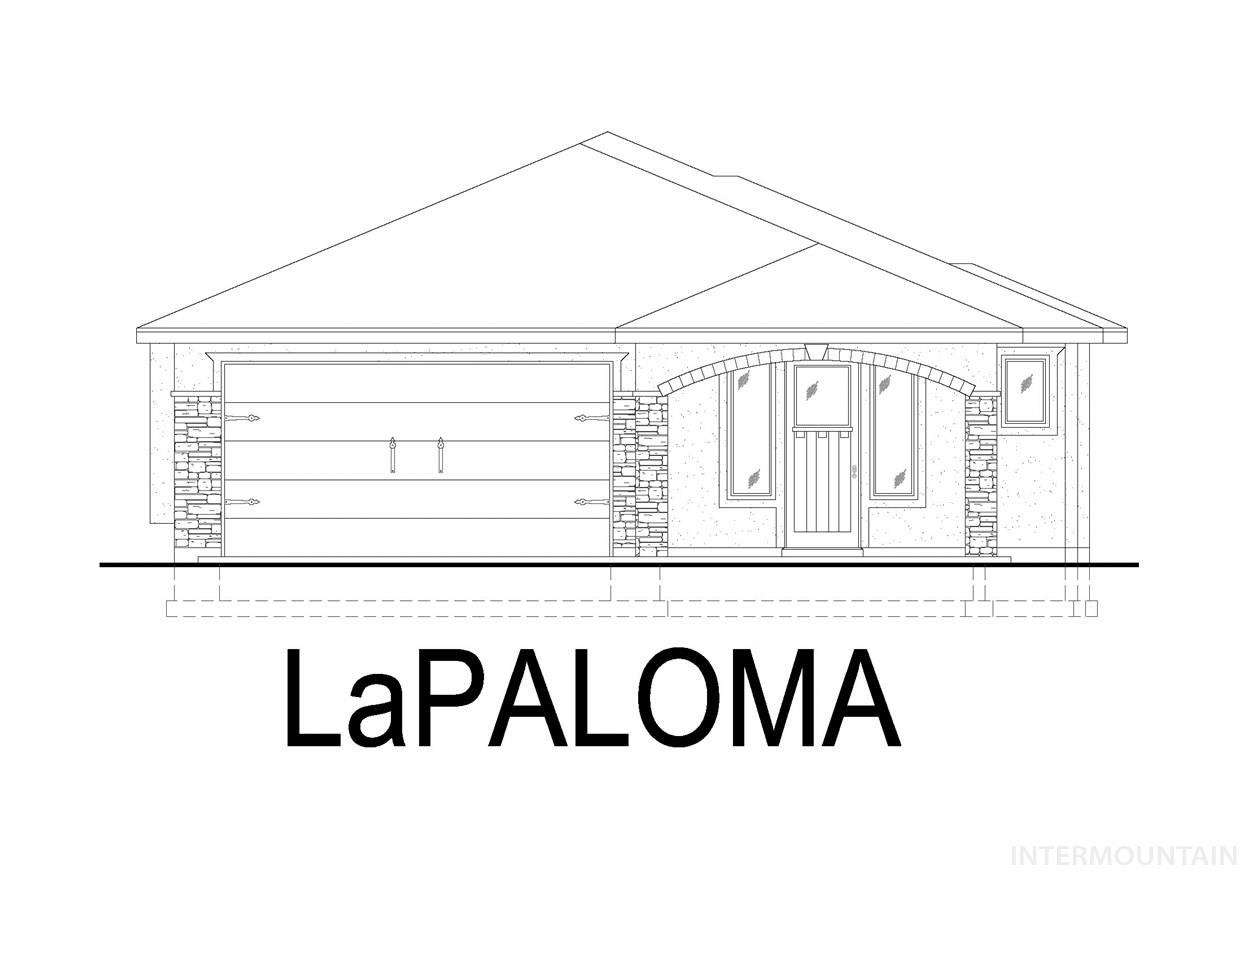 """La Paloma"" model by Ted Mason Signature Homes. High-end finishes are impressive w /full stucco and stone exterior, striking interior touches plus HERS energy rated. Charm your guests w/ indoor and outdoor living at its finest. Enjoy the peace of mind that comes w/owning a quality, custom-built home. Over sized garage for all of your needs + small shop area. Front and rear landscape maintained by HOA w/elegant community rec center including pool/fitness room."